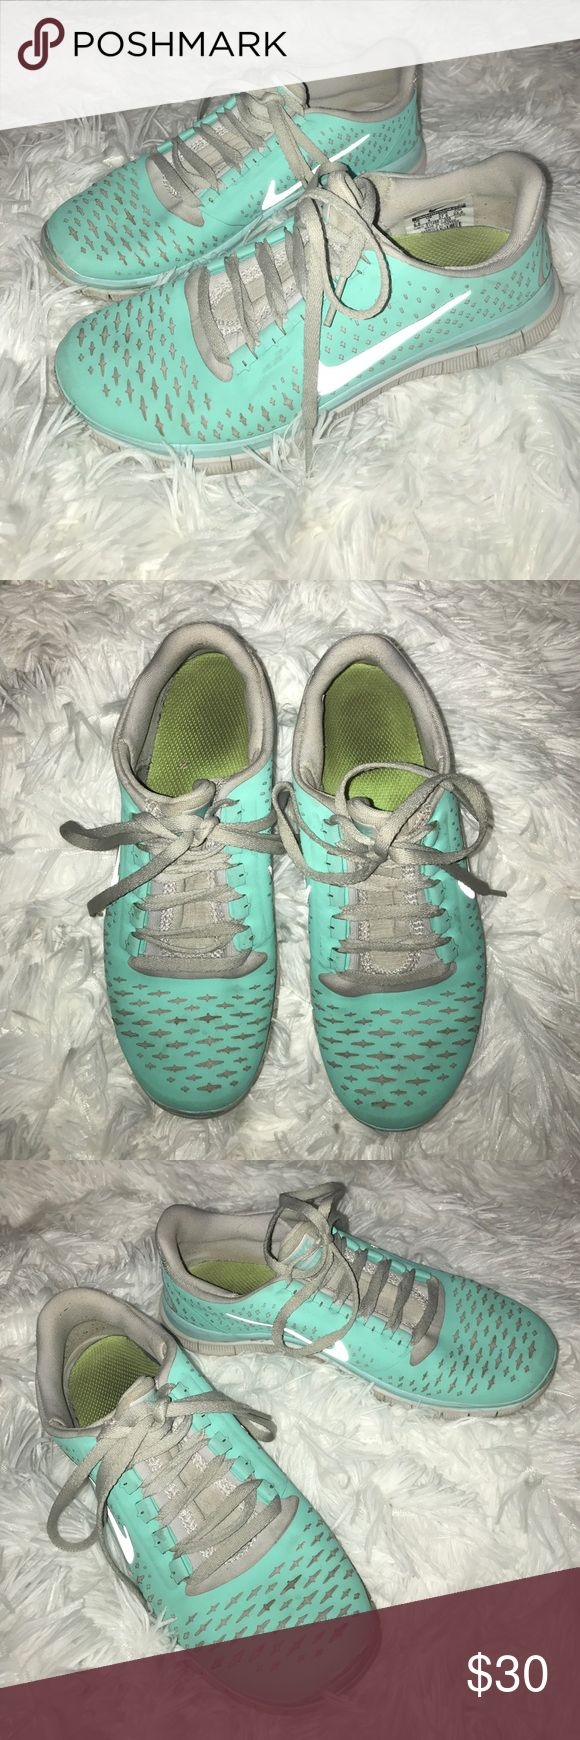 Nike Tiffany blue sneakers 6.5 Definitely got some use out of them, but still have lots of life left! Could probably be cleaned up if tried, but they're sneakers so I've never worried about it. The swoosh is silver, but turns white with flash. Nike Shoes Athletic Shoes